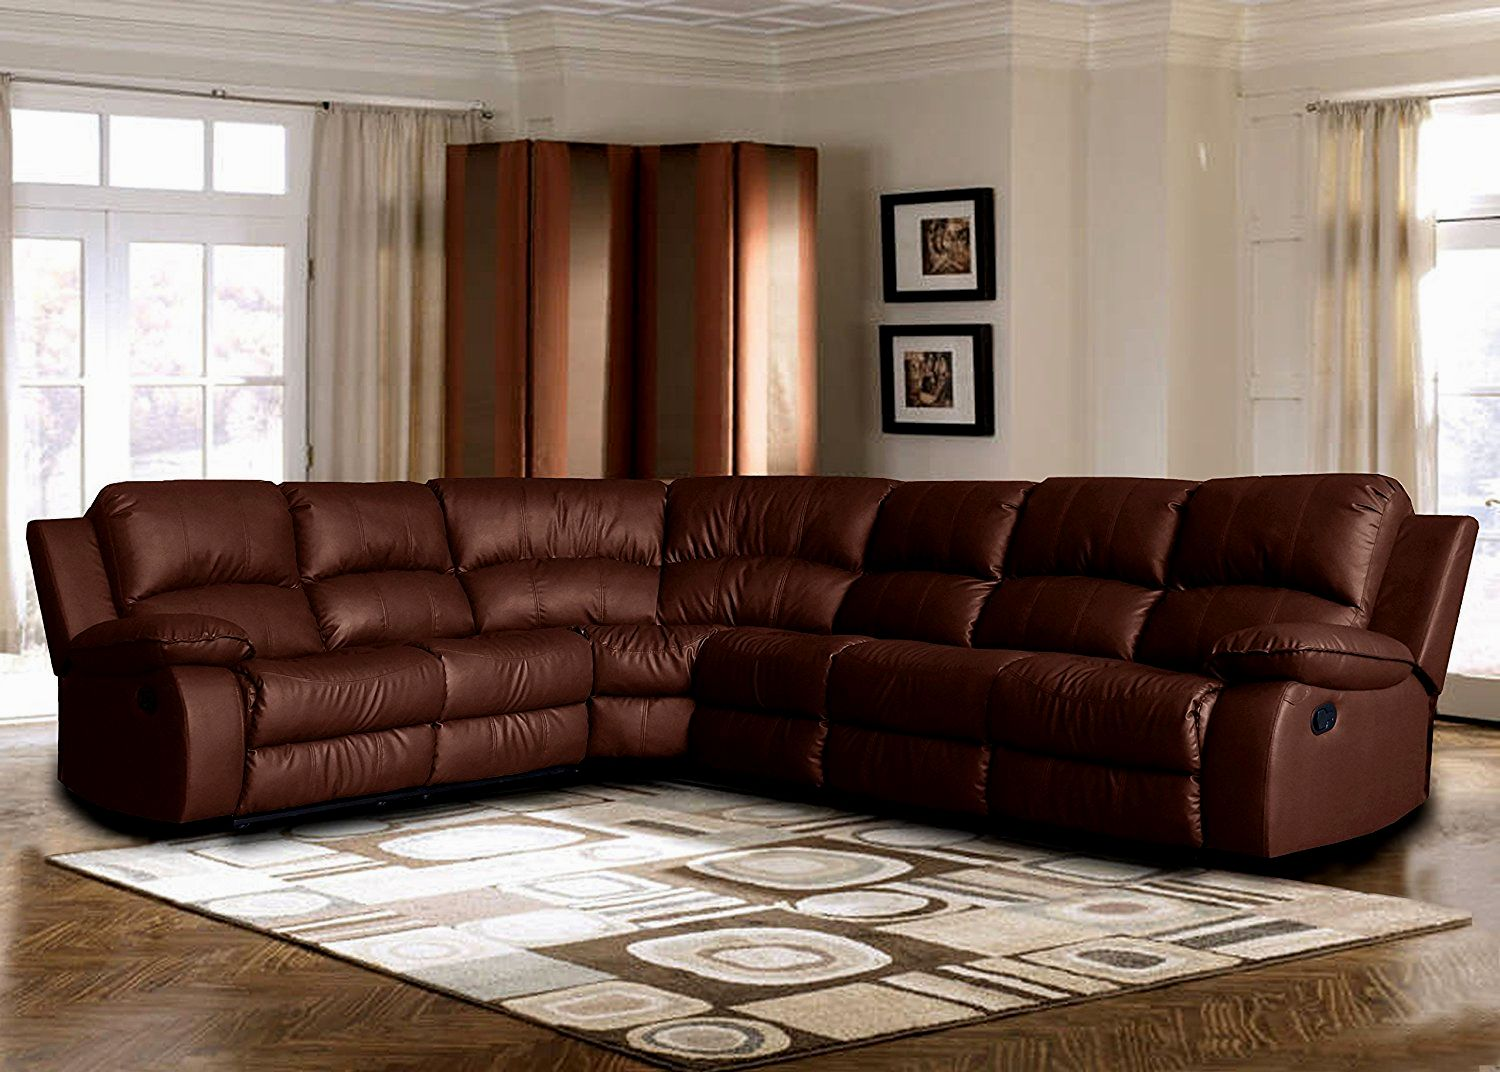 finest ethan allen leather sofa layout-Fascinating Ethan Allen Leather sofa Image